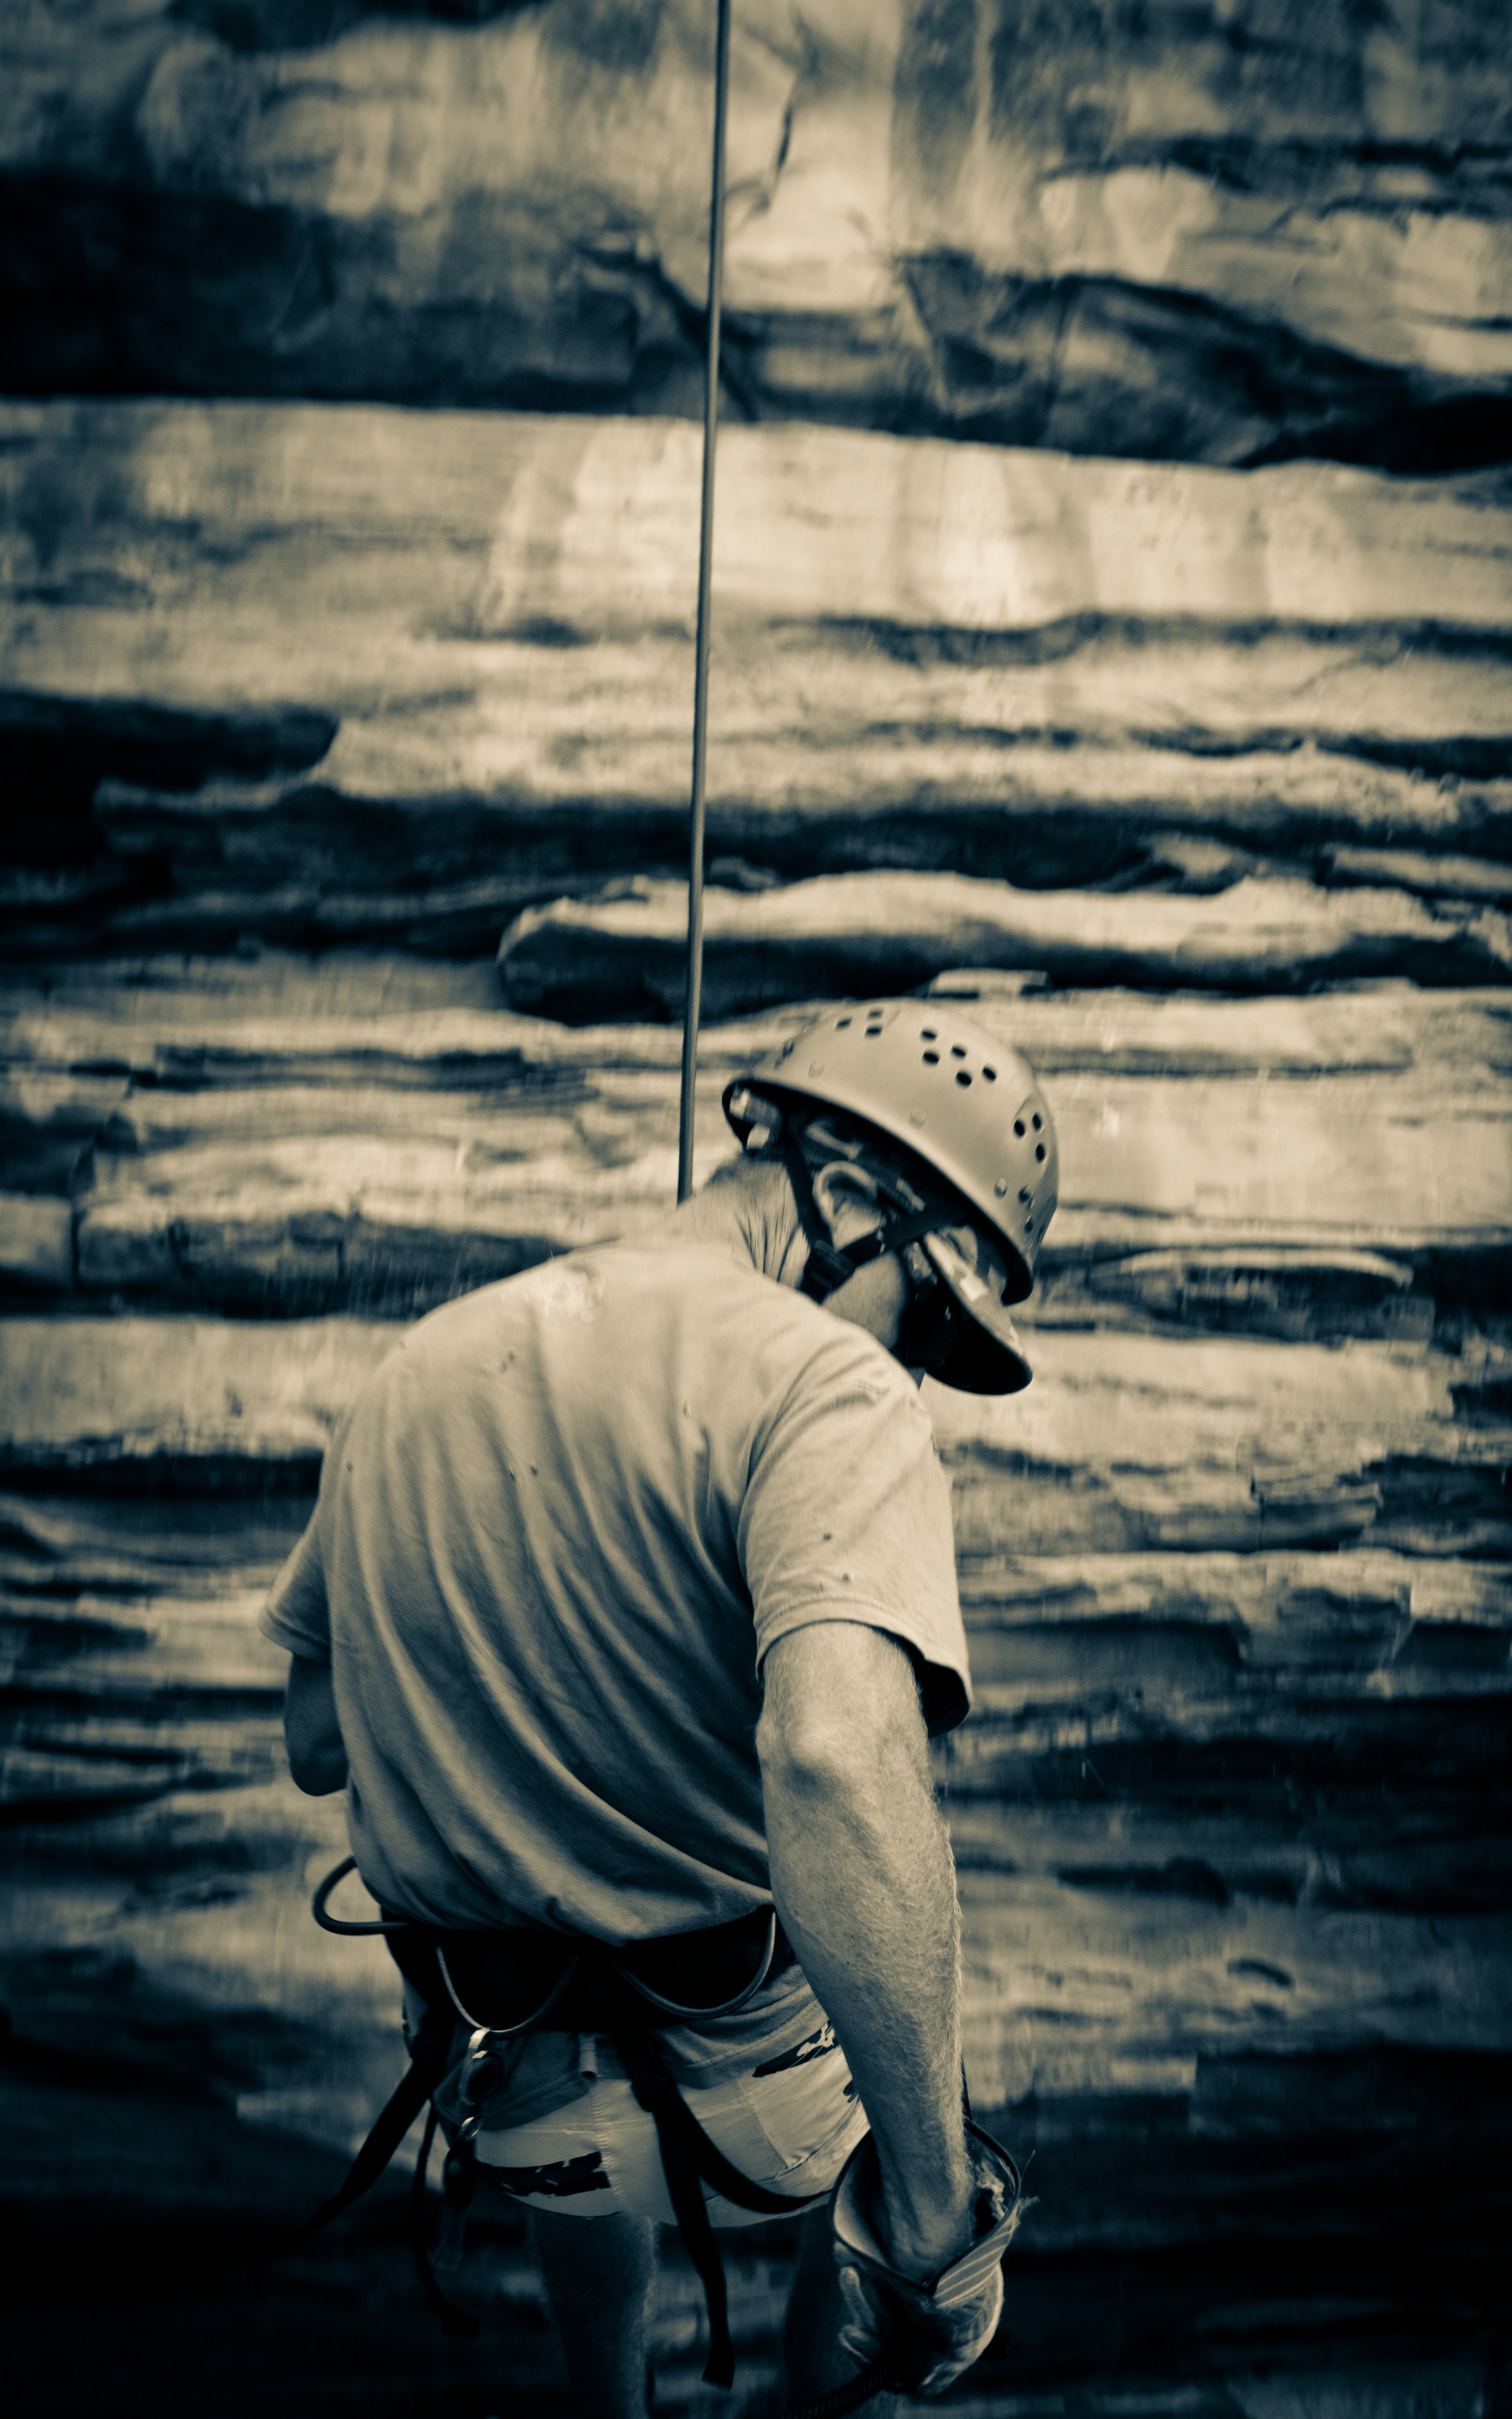 Abseiling 400 million yr old cliffs!